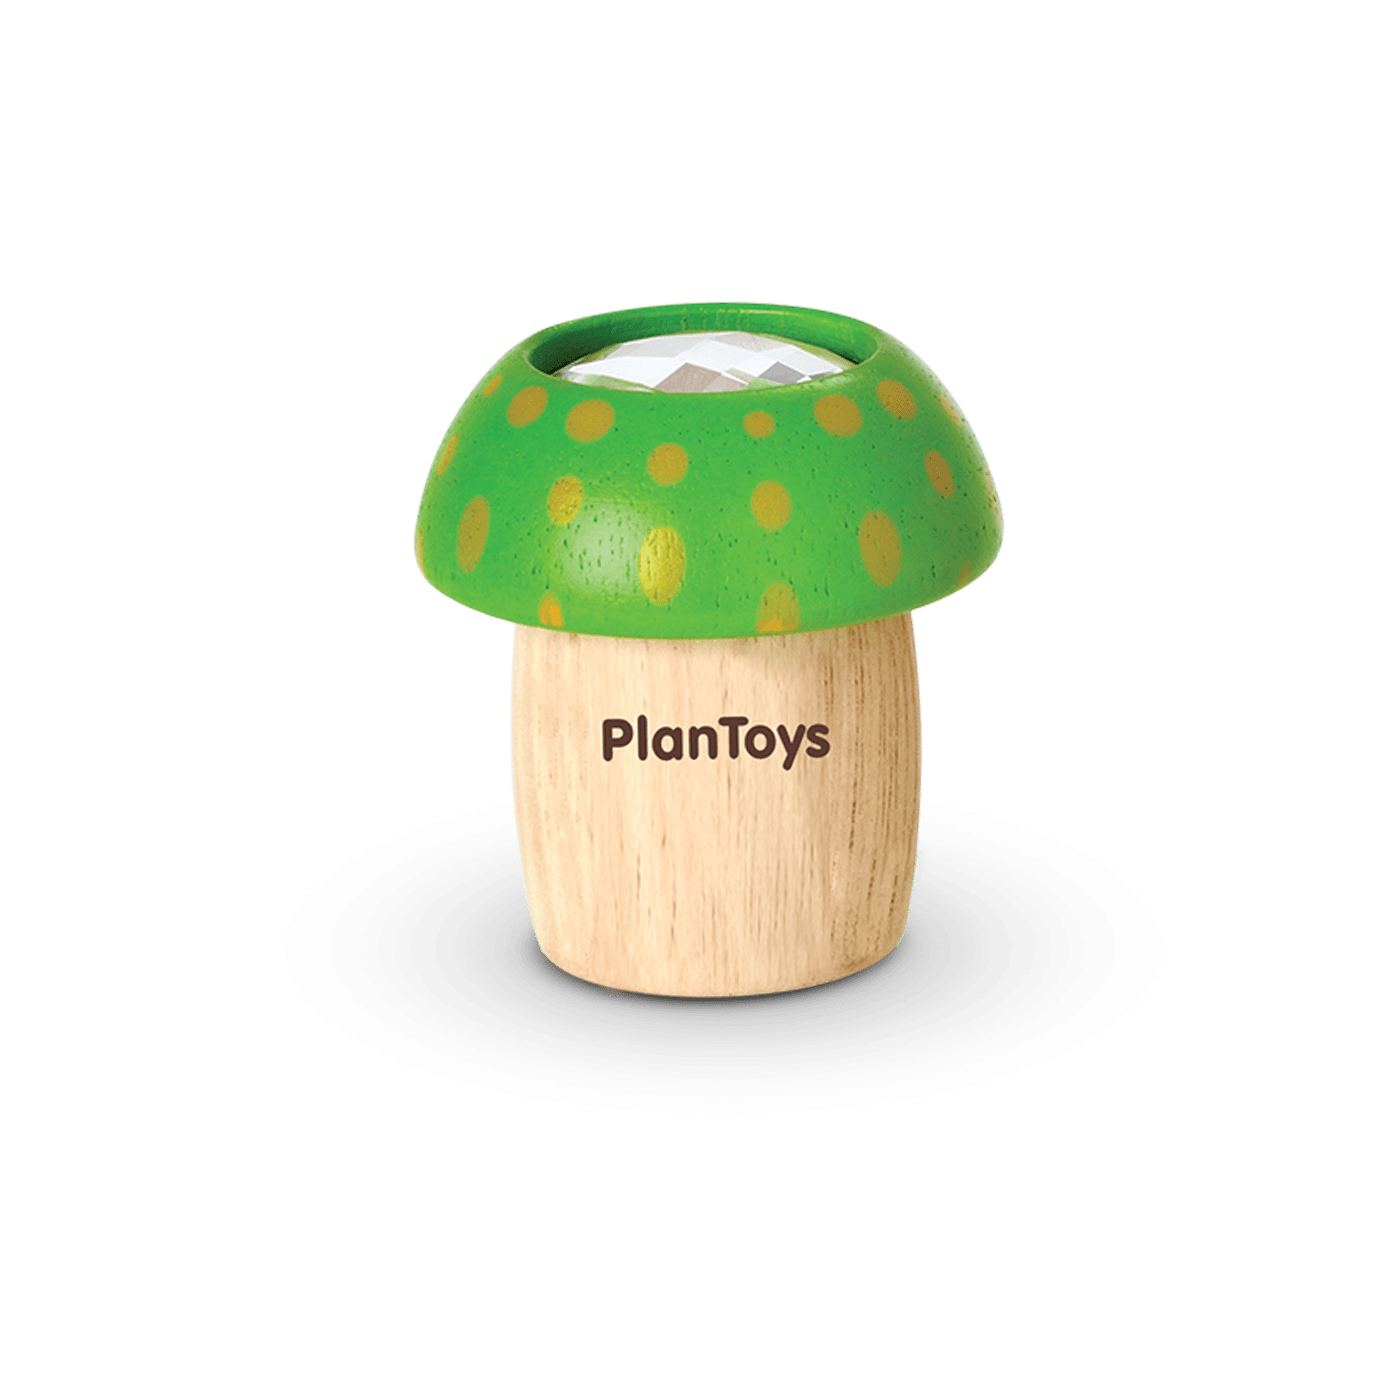 4317_PlanToys_MUSHROOM_KALEIDOSCOPE_(Green)_Learning_and_Education_Imagination_Fine_Motor_Coordination_Visual_18m_Wooden_toys_Education_toys_Safety_Toys_Non-toxic_0.png